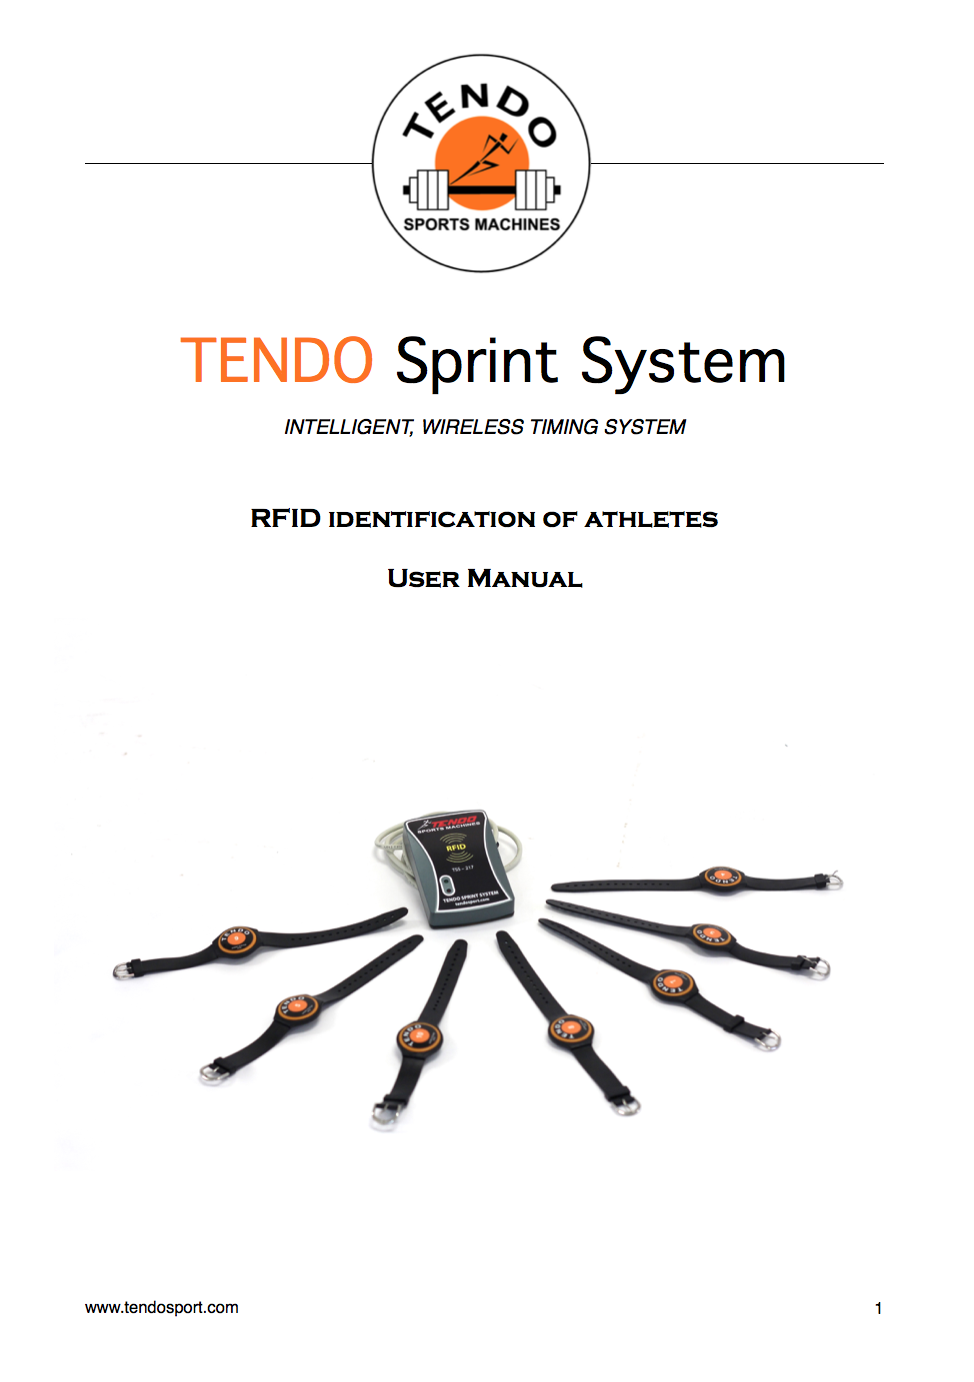 Tendo Sprint System RFID identification of athletes user manual cover photo